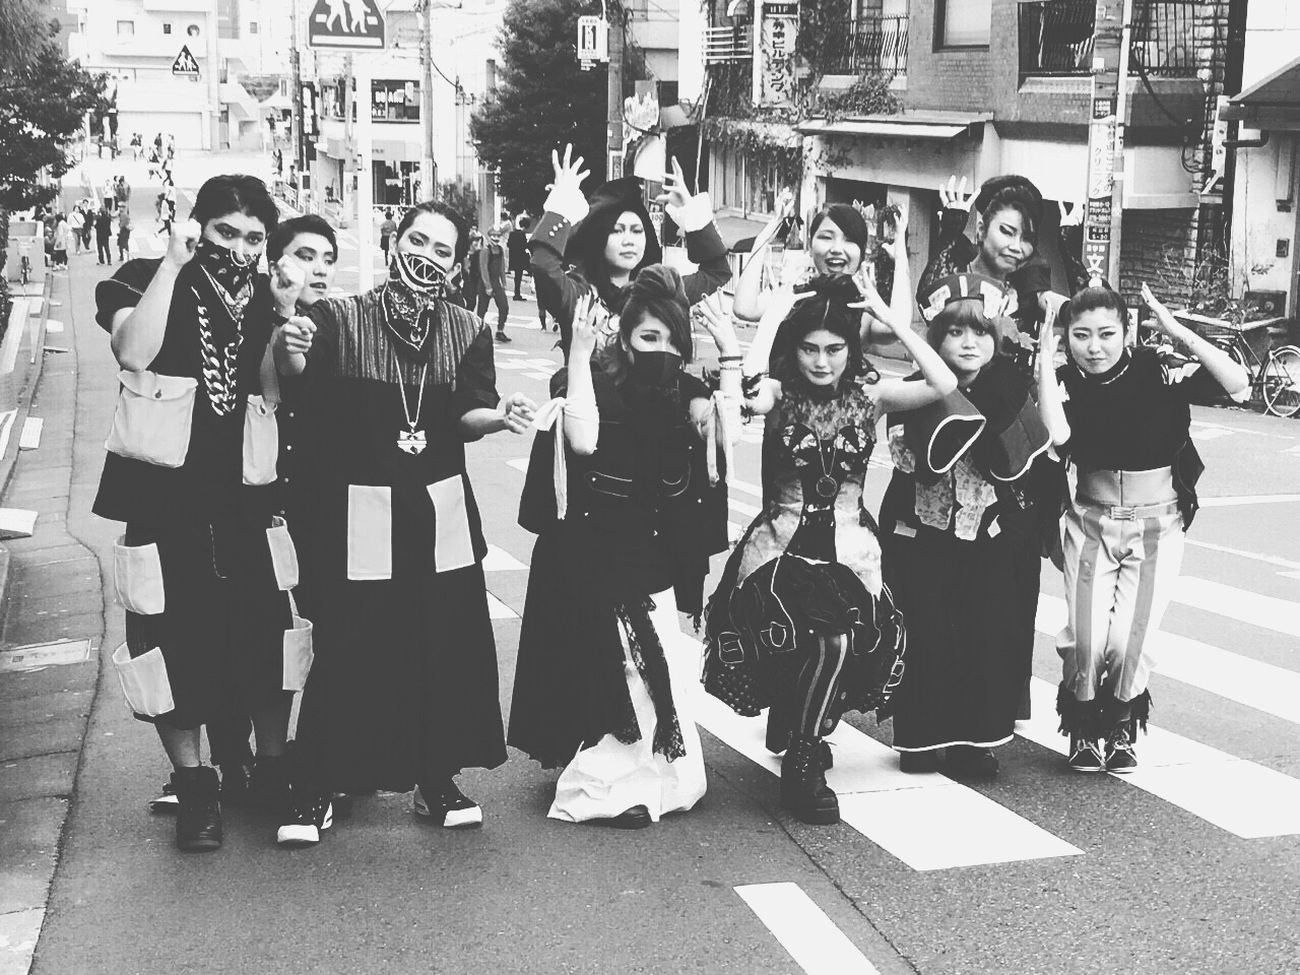 Japan CTC Ciyotanaka Fasionschool Fasionshow Enjoying Life Happy Friend Happyhalloween